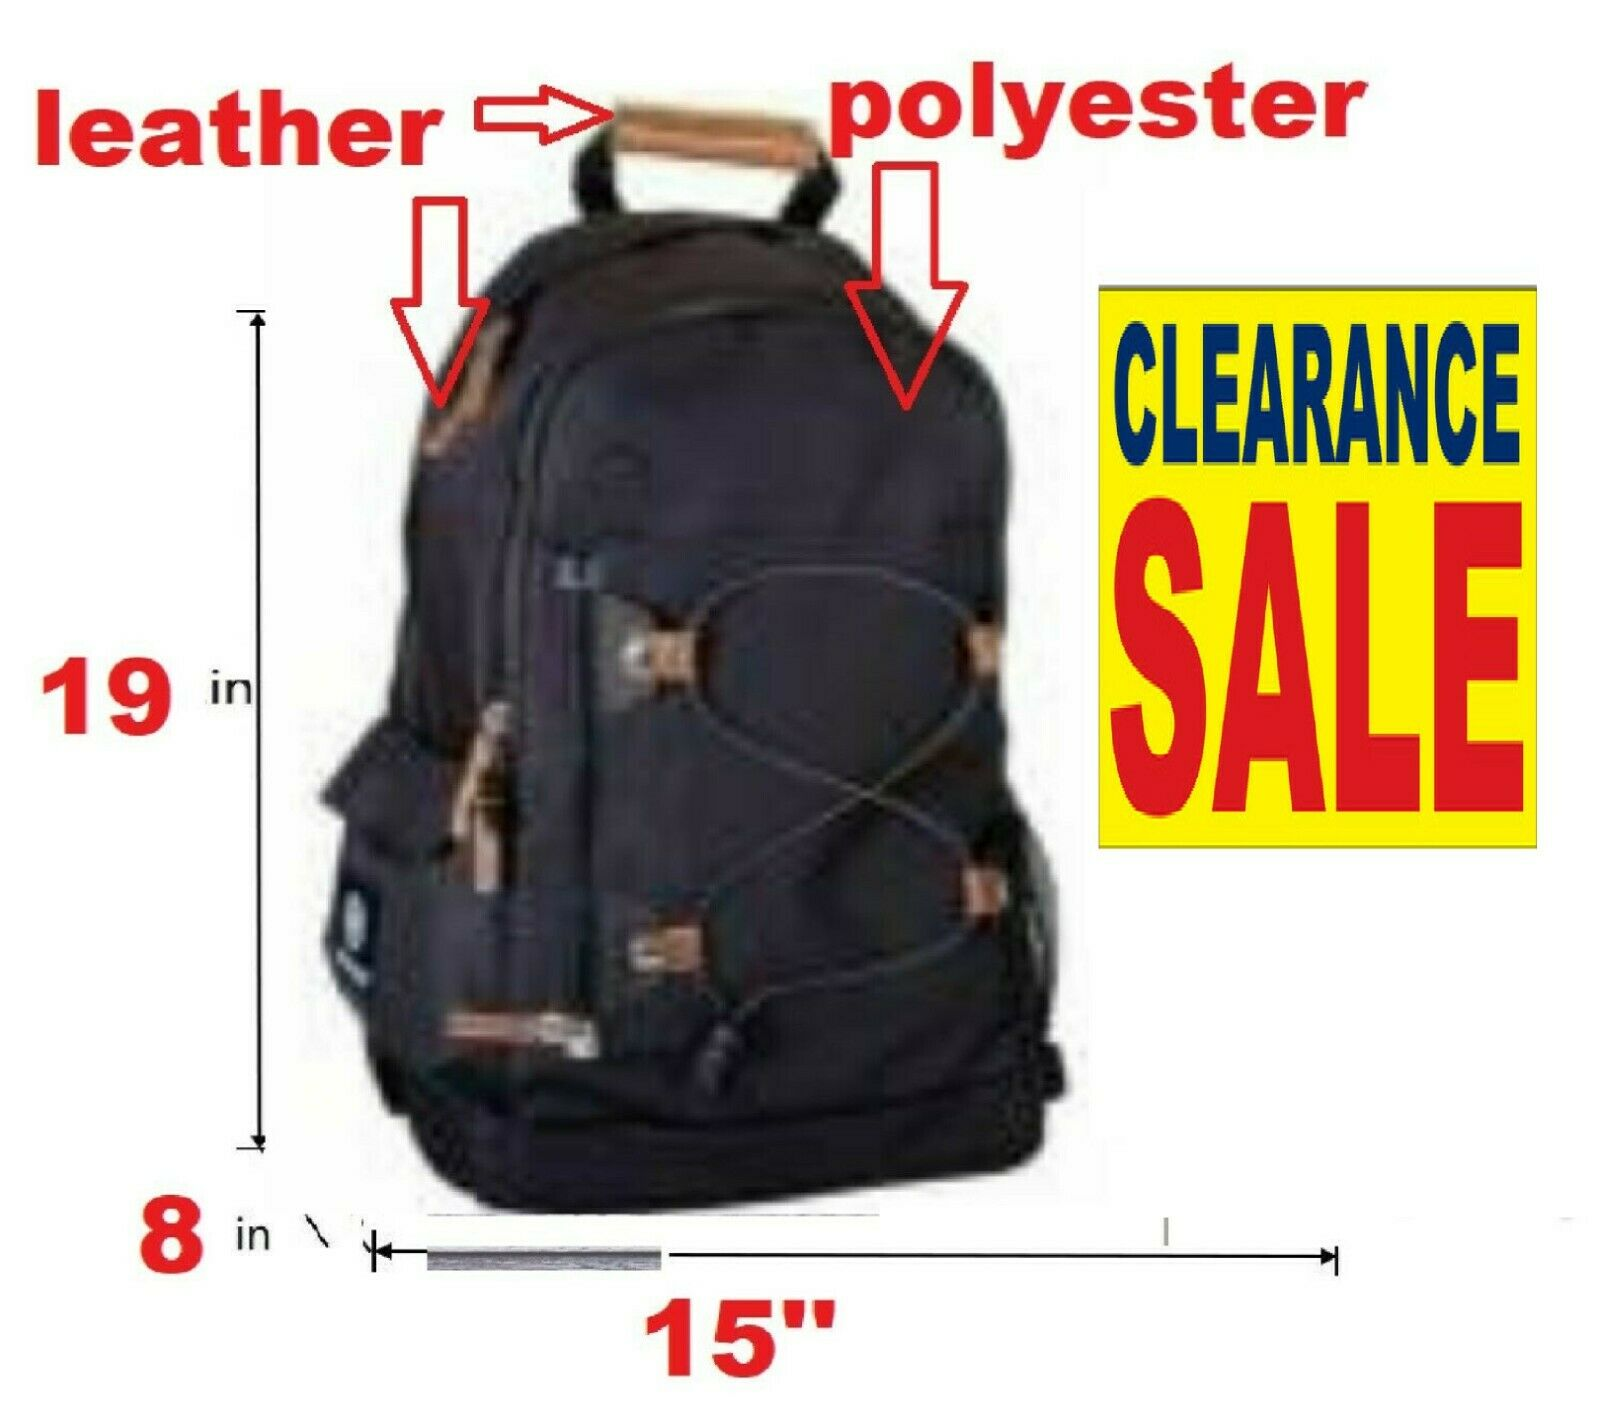 Clearance purchase backpack that is black class Travel computer Rucksack Zippe... - s l1600